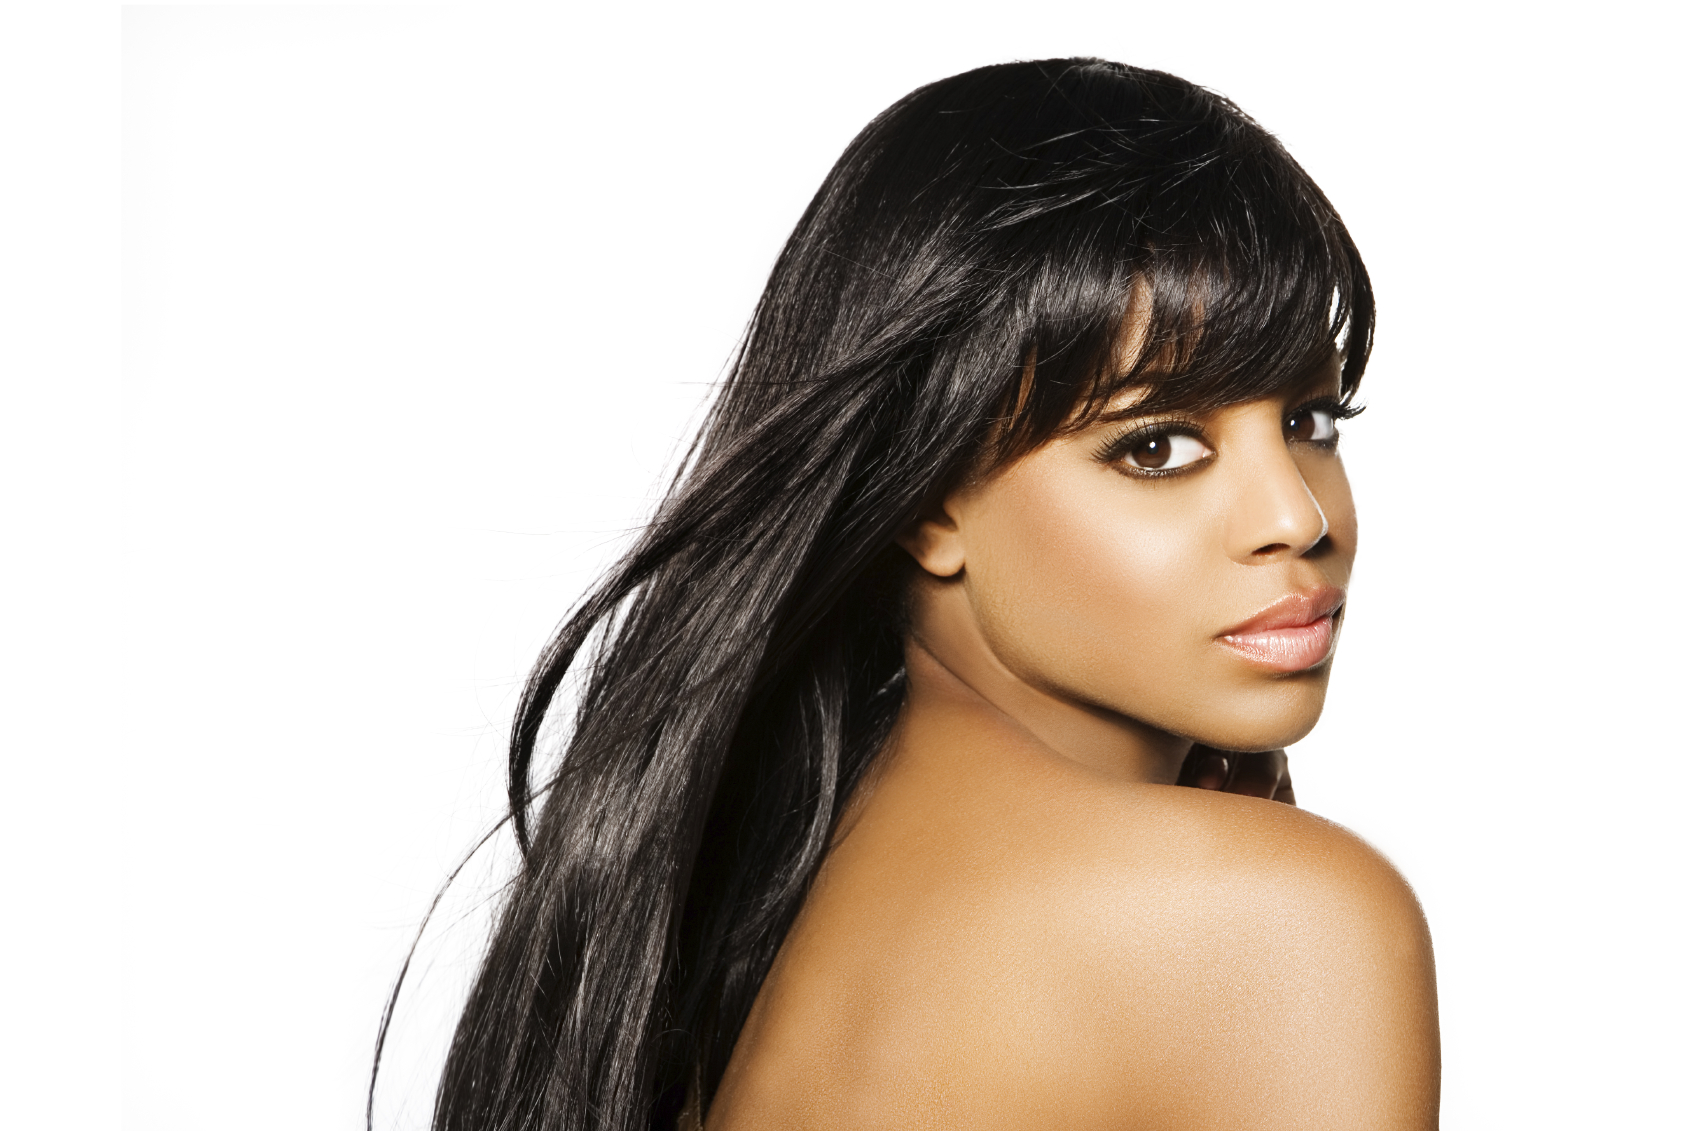 Guide To Healthy Relaxed Hair Part 2 Healthy And Relaxed